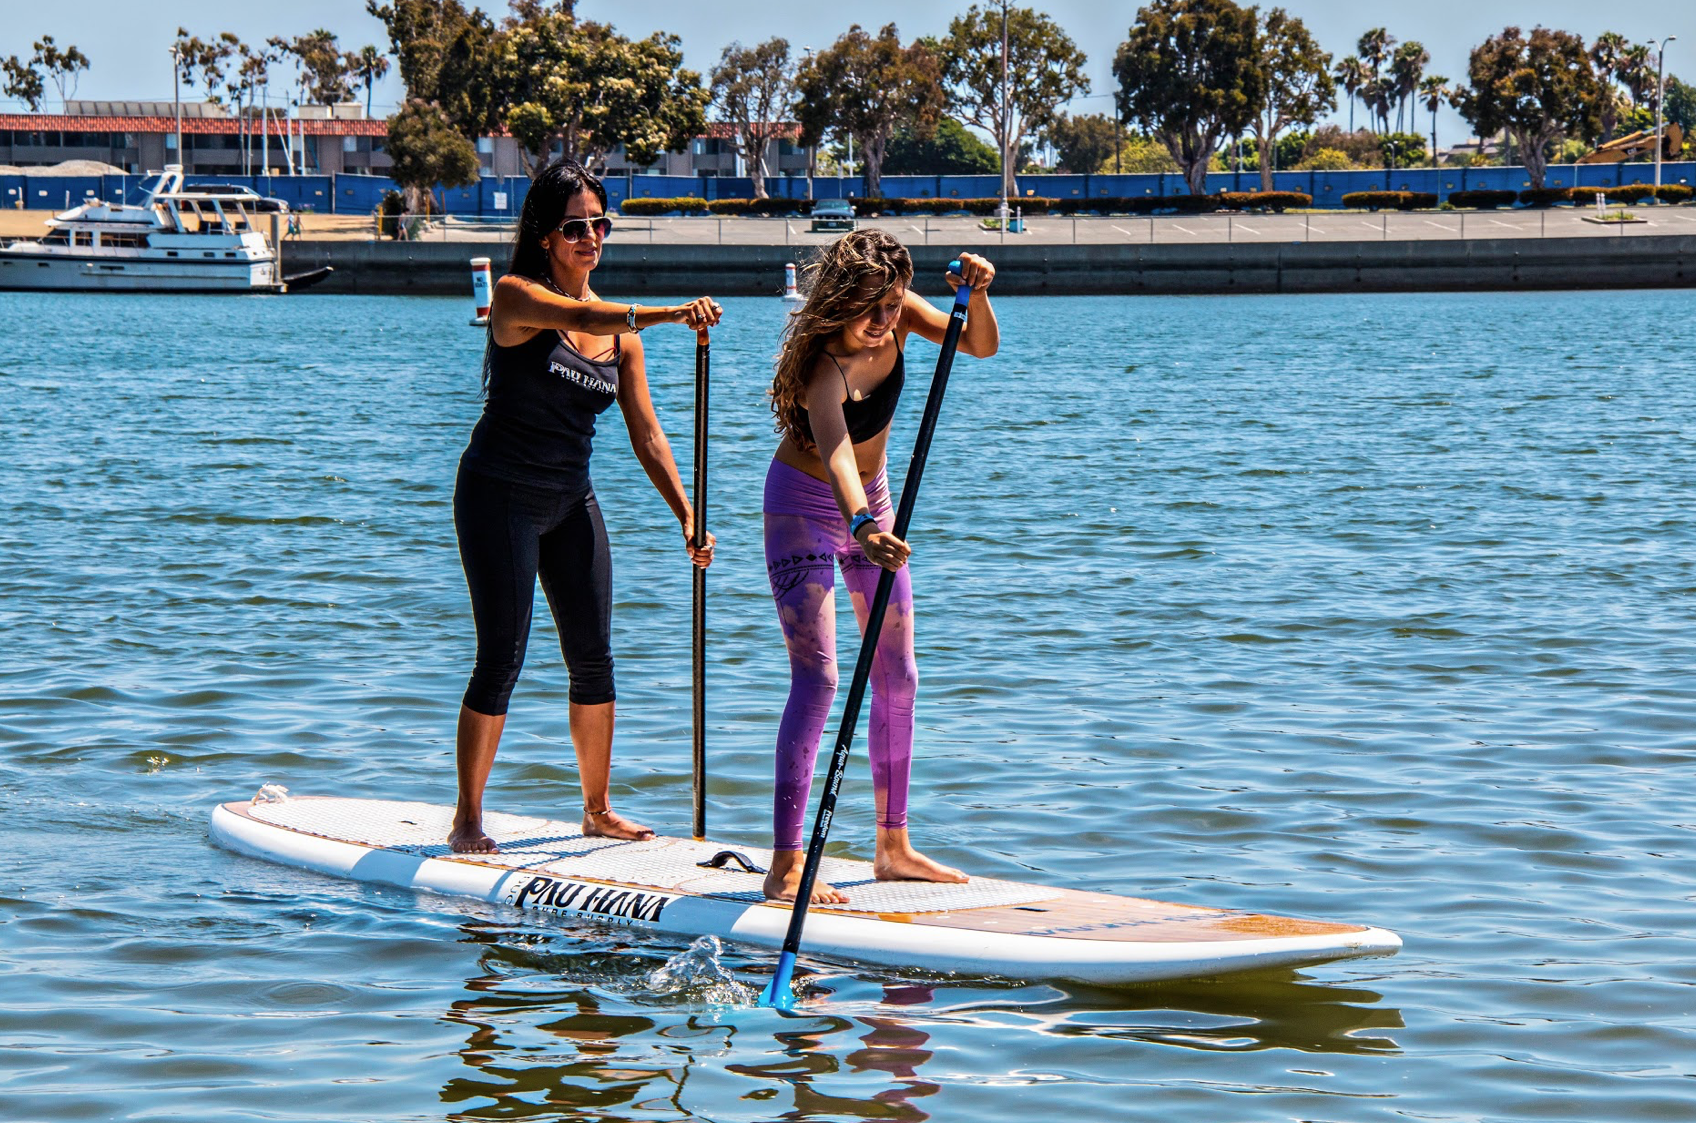 paddling the Duo tandem pau hana stand up paddle board in Venice